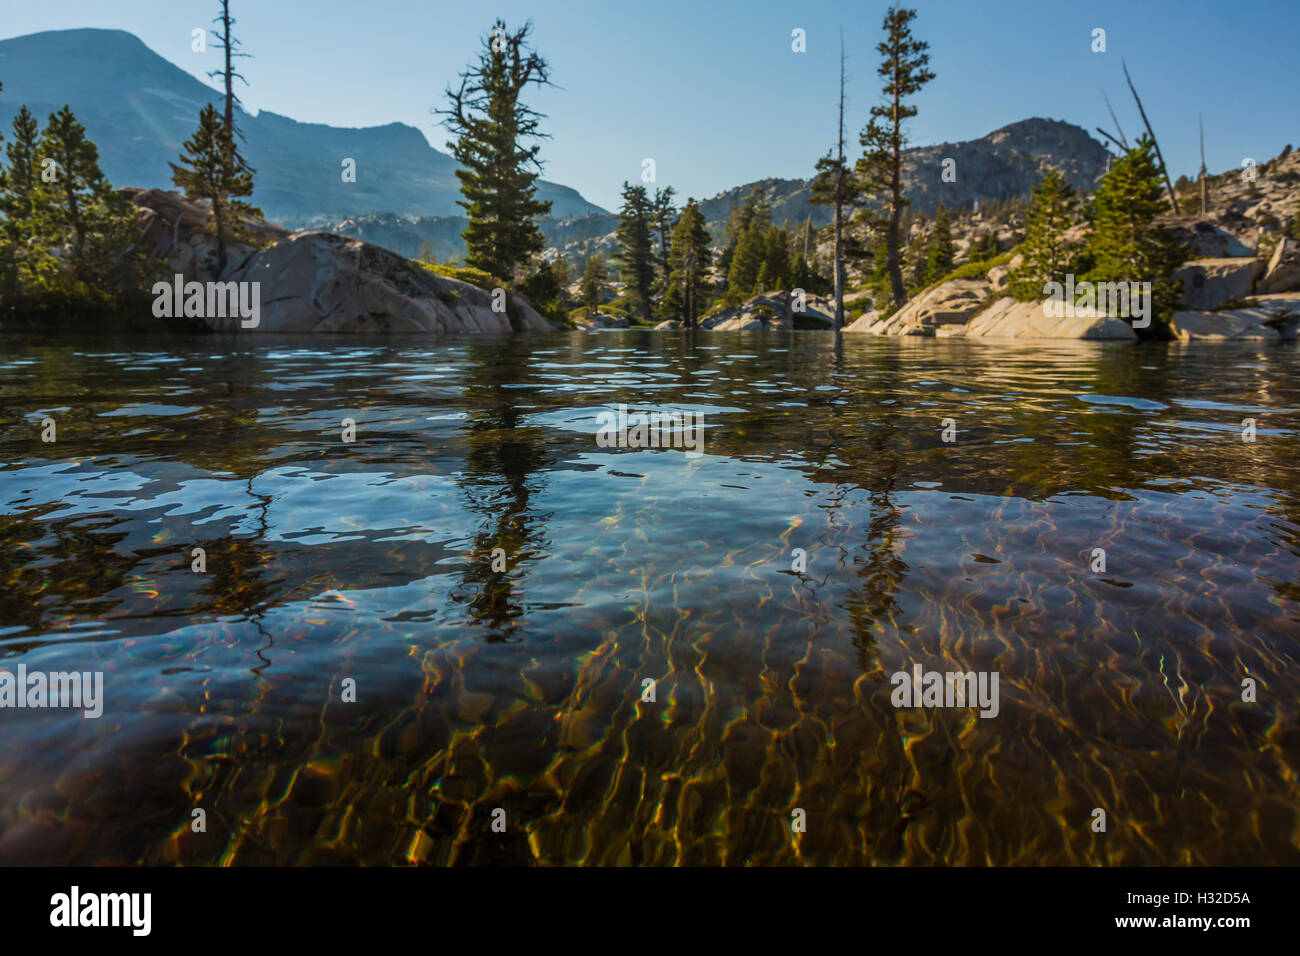 Water and granite at the shore at Ropi Lake in the Desolation Wilderness, Eldorado National Forest, California, - Stock Image